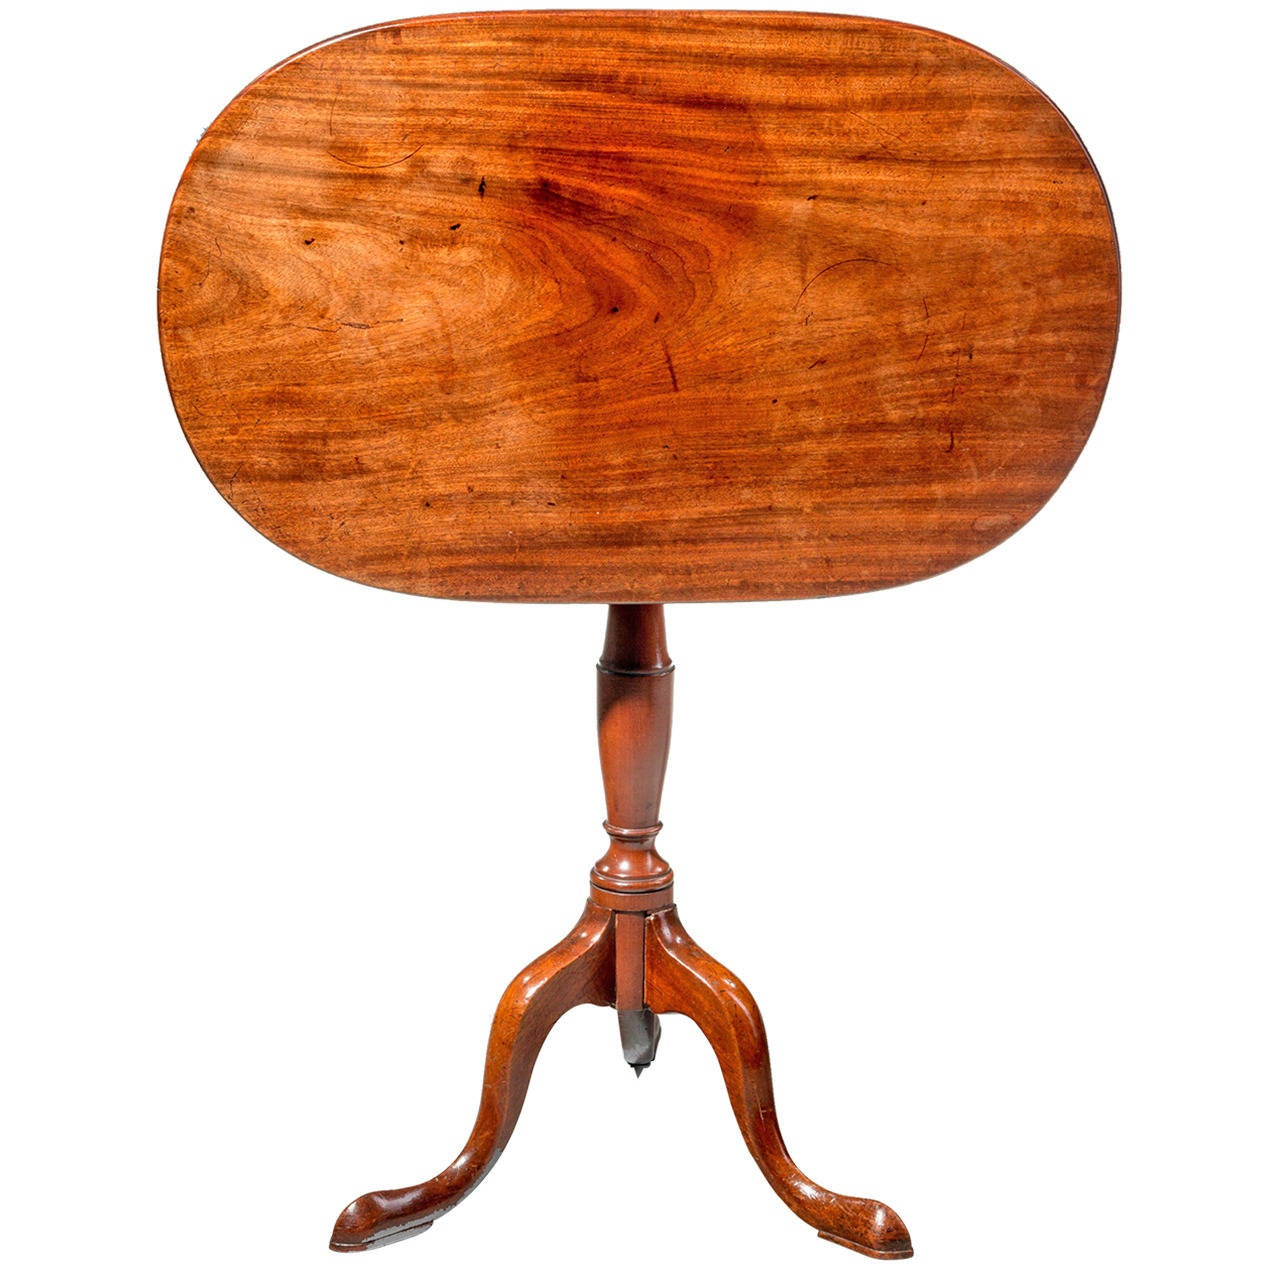 George III Period Mahogany Tilt Top Table